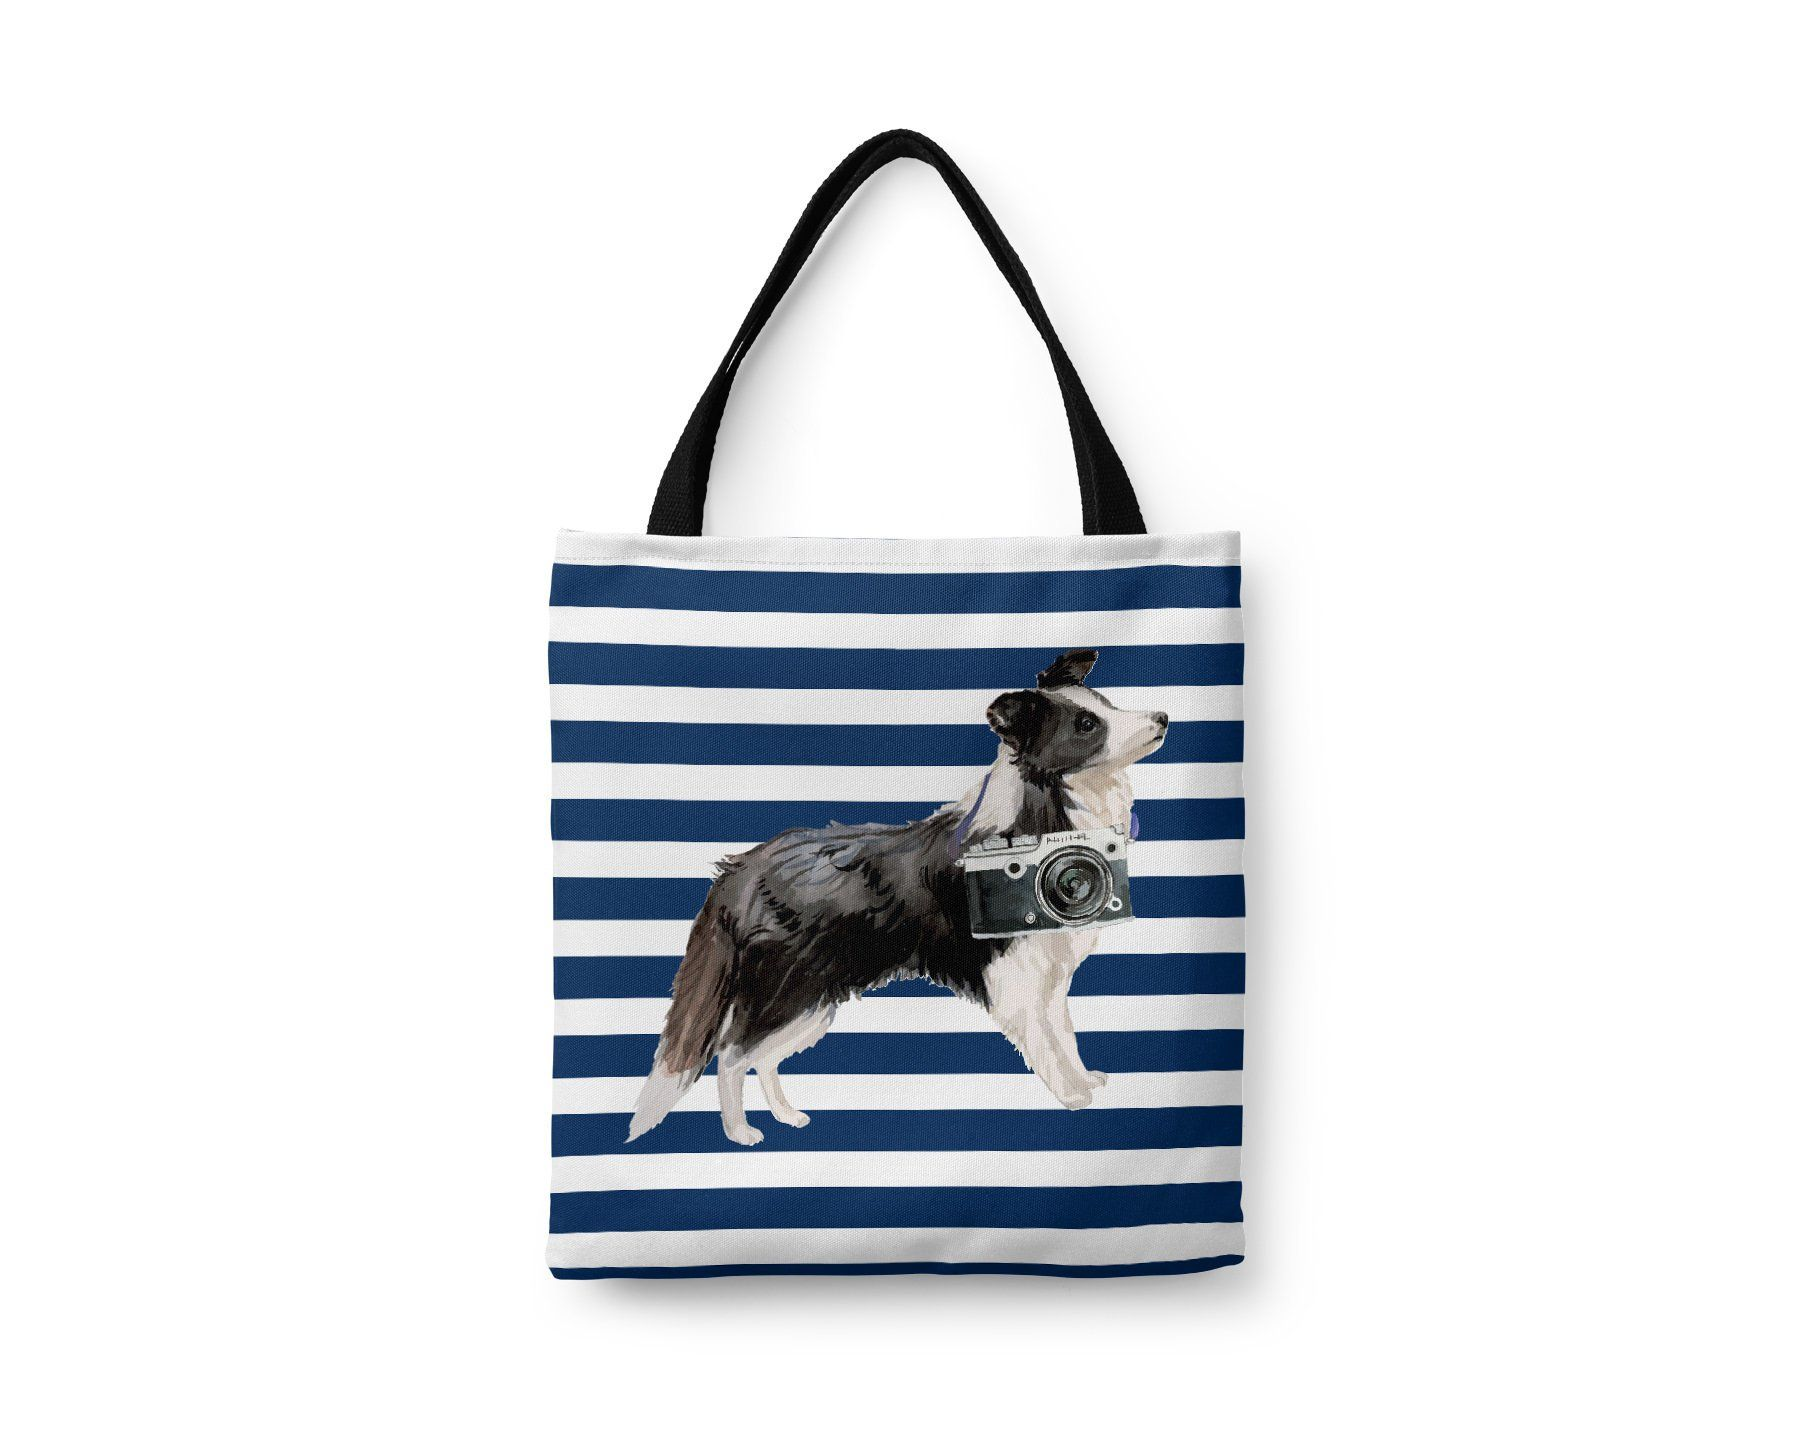 Border Rough White Collie Tote Bag Illustrated Dogs 6 Travel